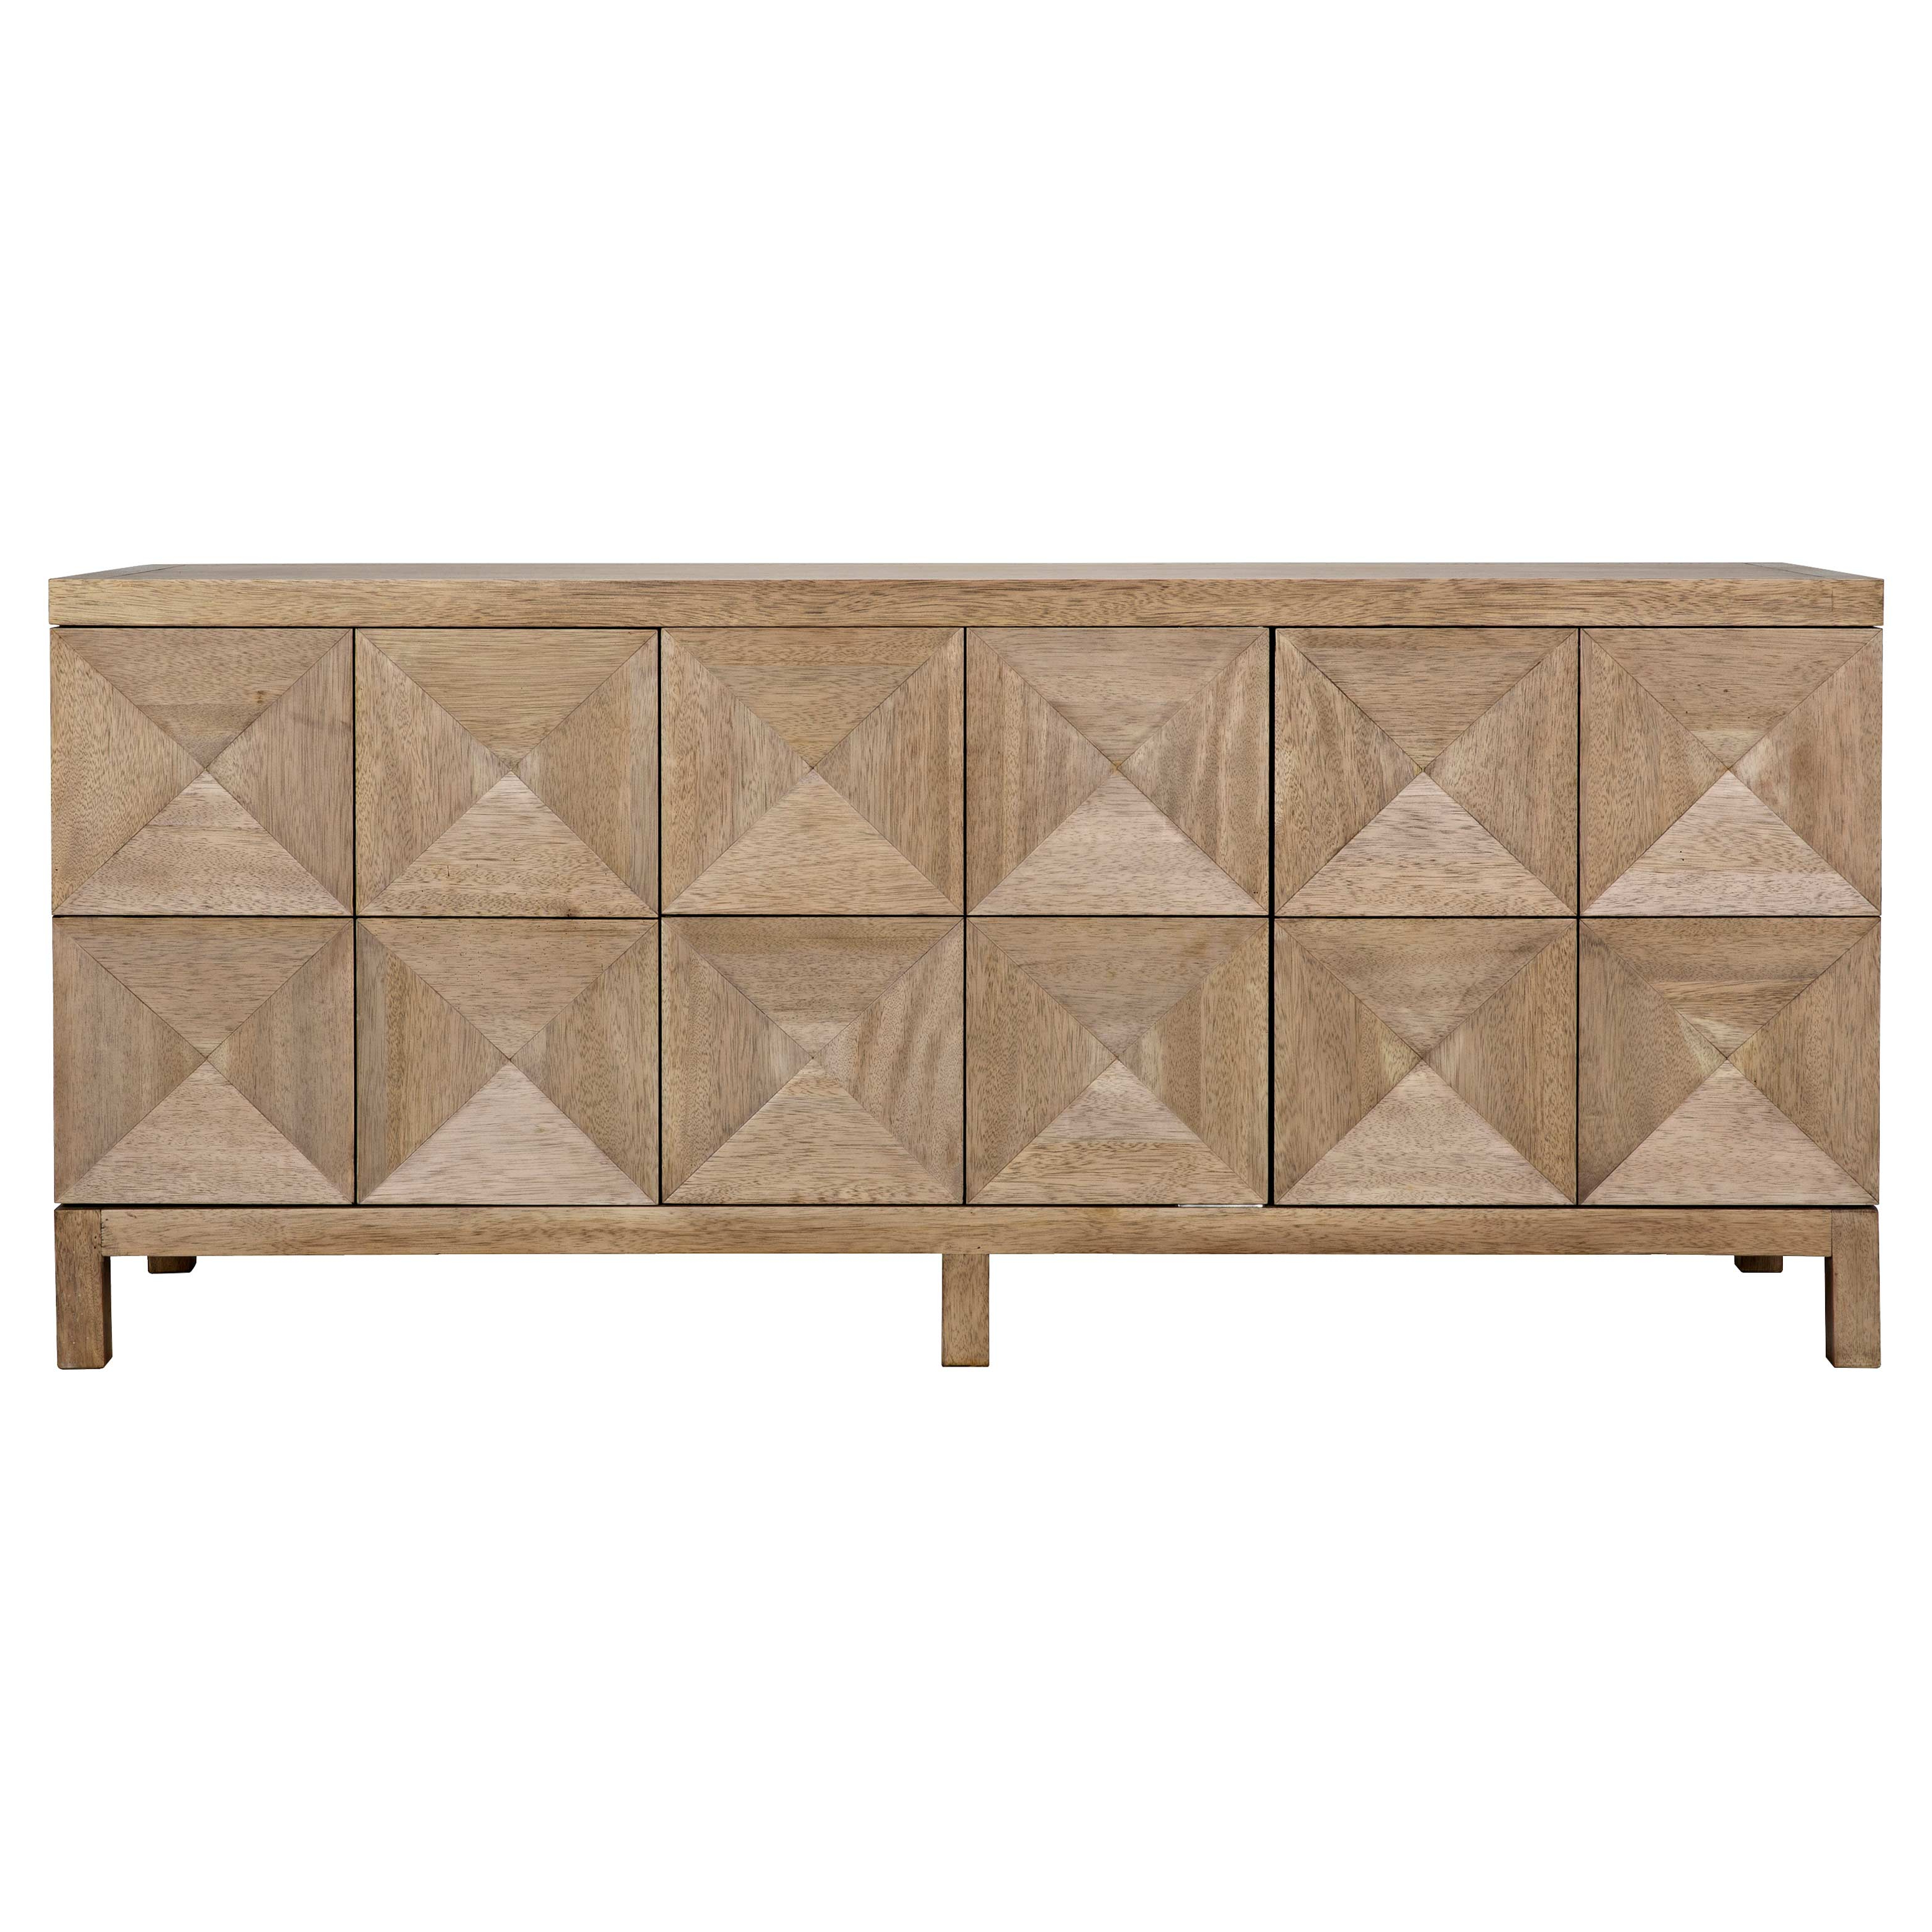 Kathy Kuo Home Throughout Well Known White Wash 3 Door 3 Drawer Sideboards (Gallery 18 of 20)